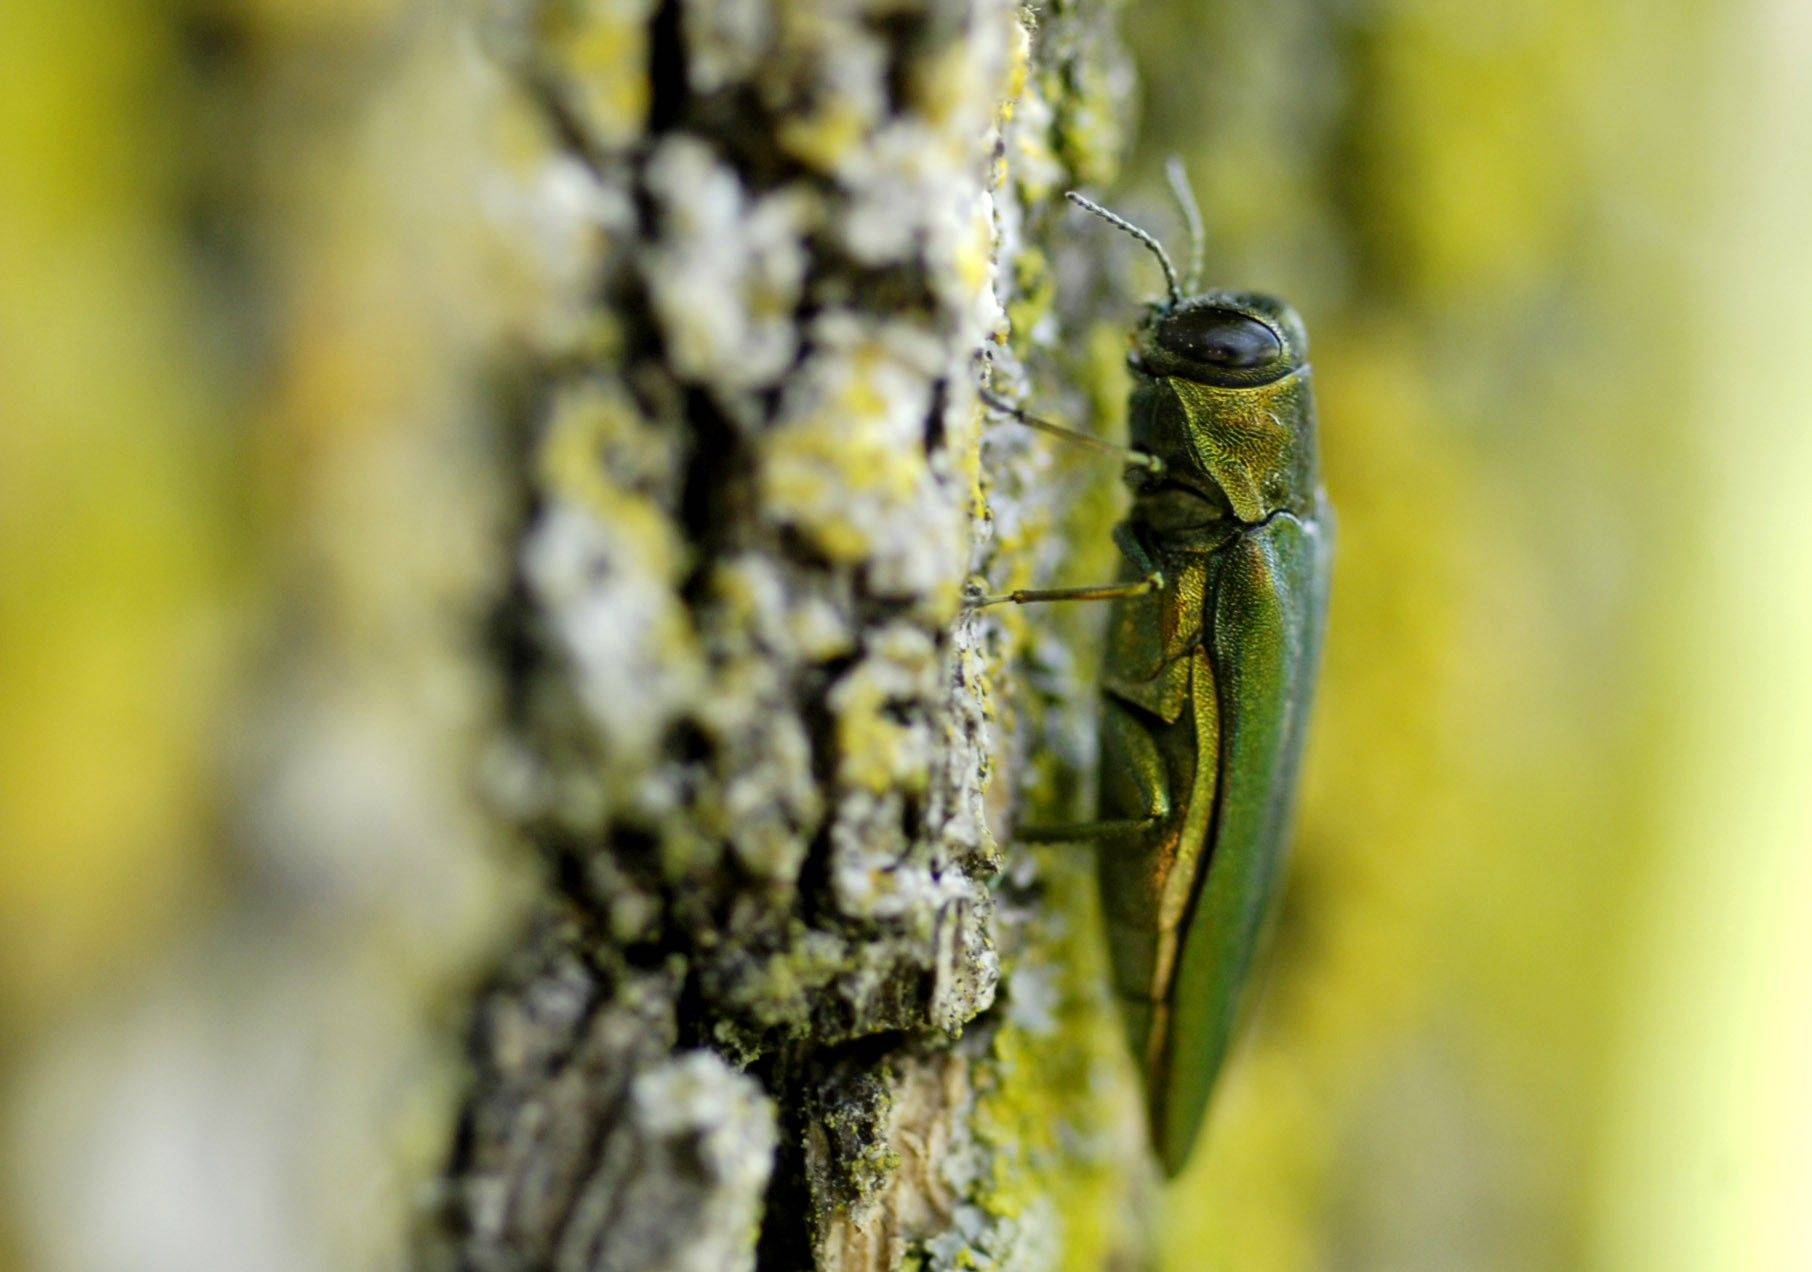 Buffalo Grove officials this week laid out their plan for dealing with the emerald ash borer, expected to infest thousands of village trees in coming years. The plan calls for removing infested trees both on public and private property.